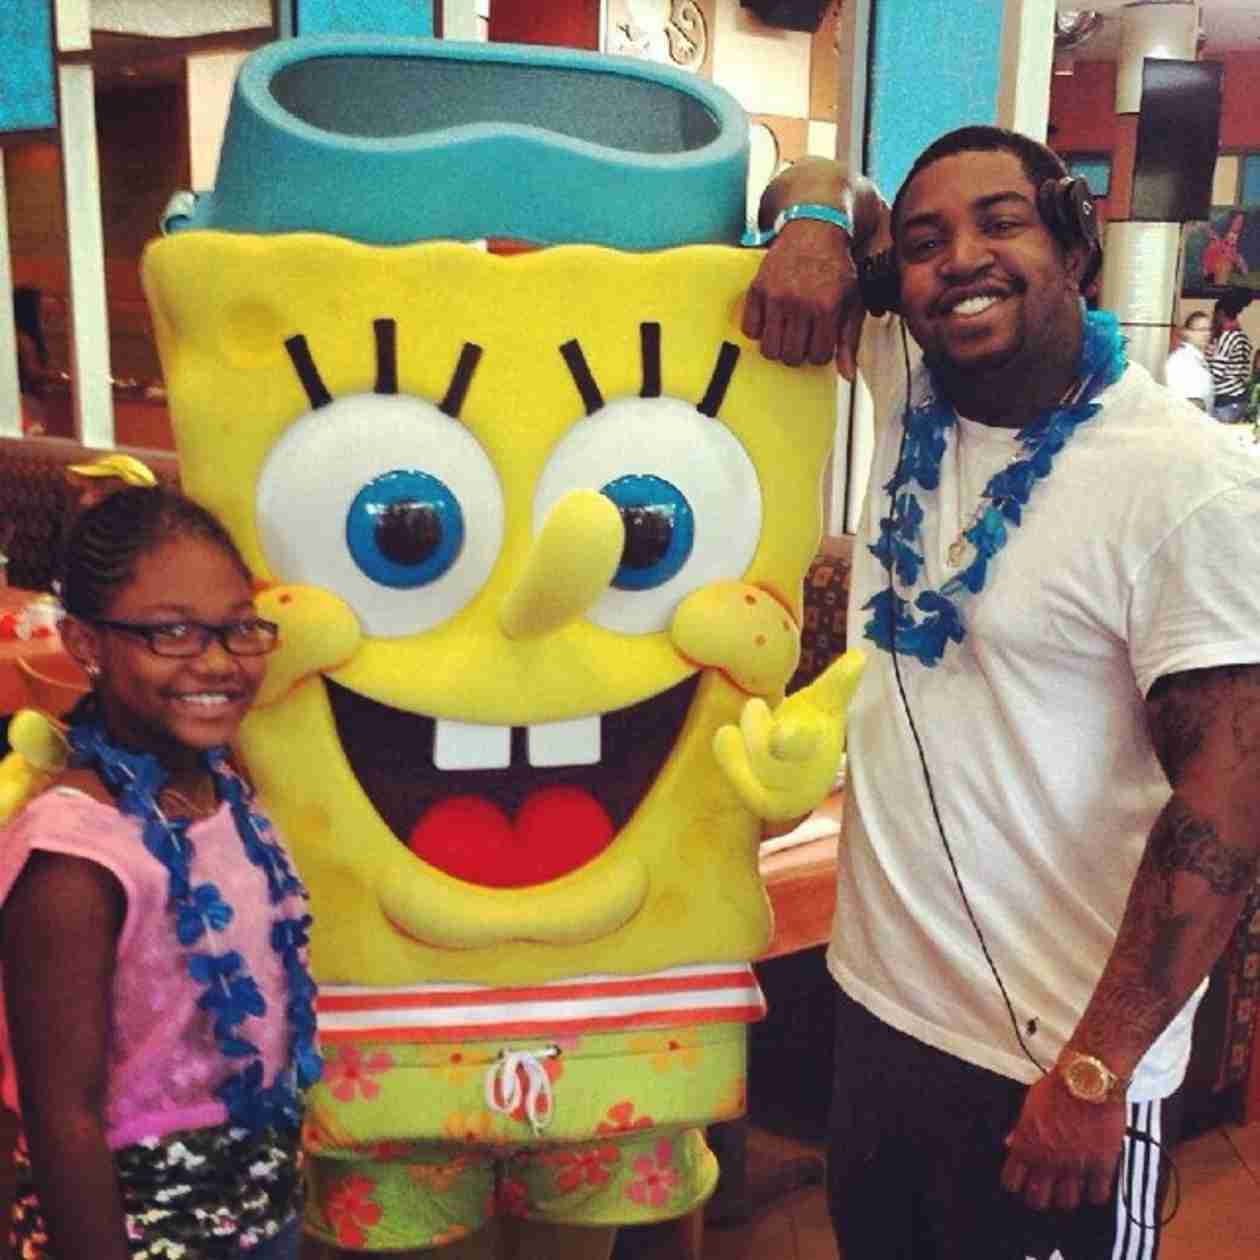 Lil Scrappy Confronts Resort Staffer For Ignoring His Daughter (VIDEO)